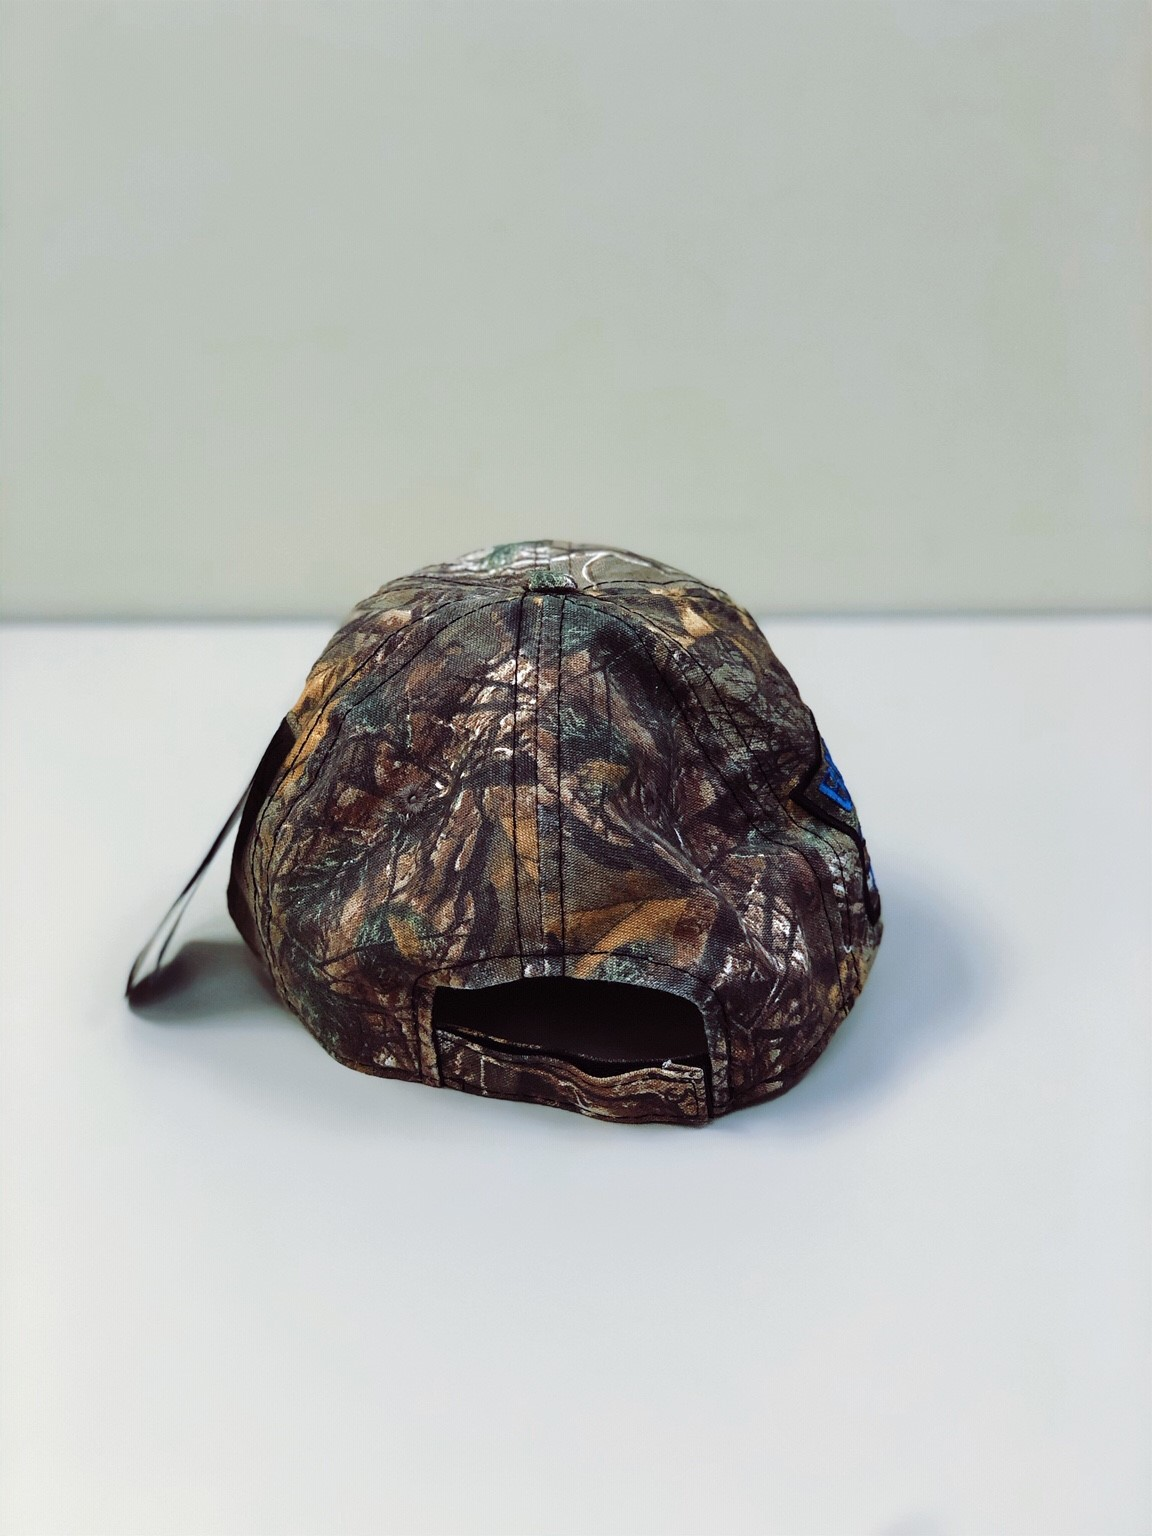 Ford Built Tough Cap Back View - Officially Licensed for sale by Pioneer Promo